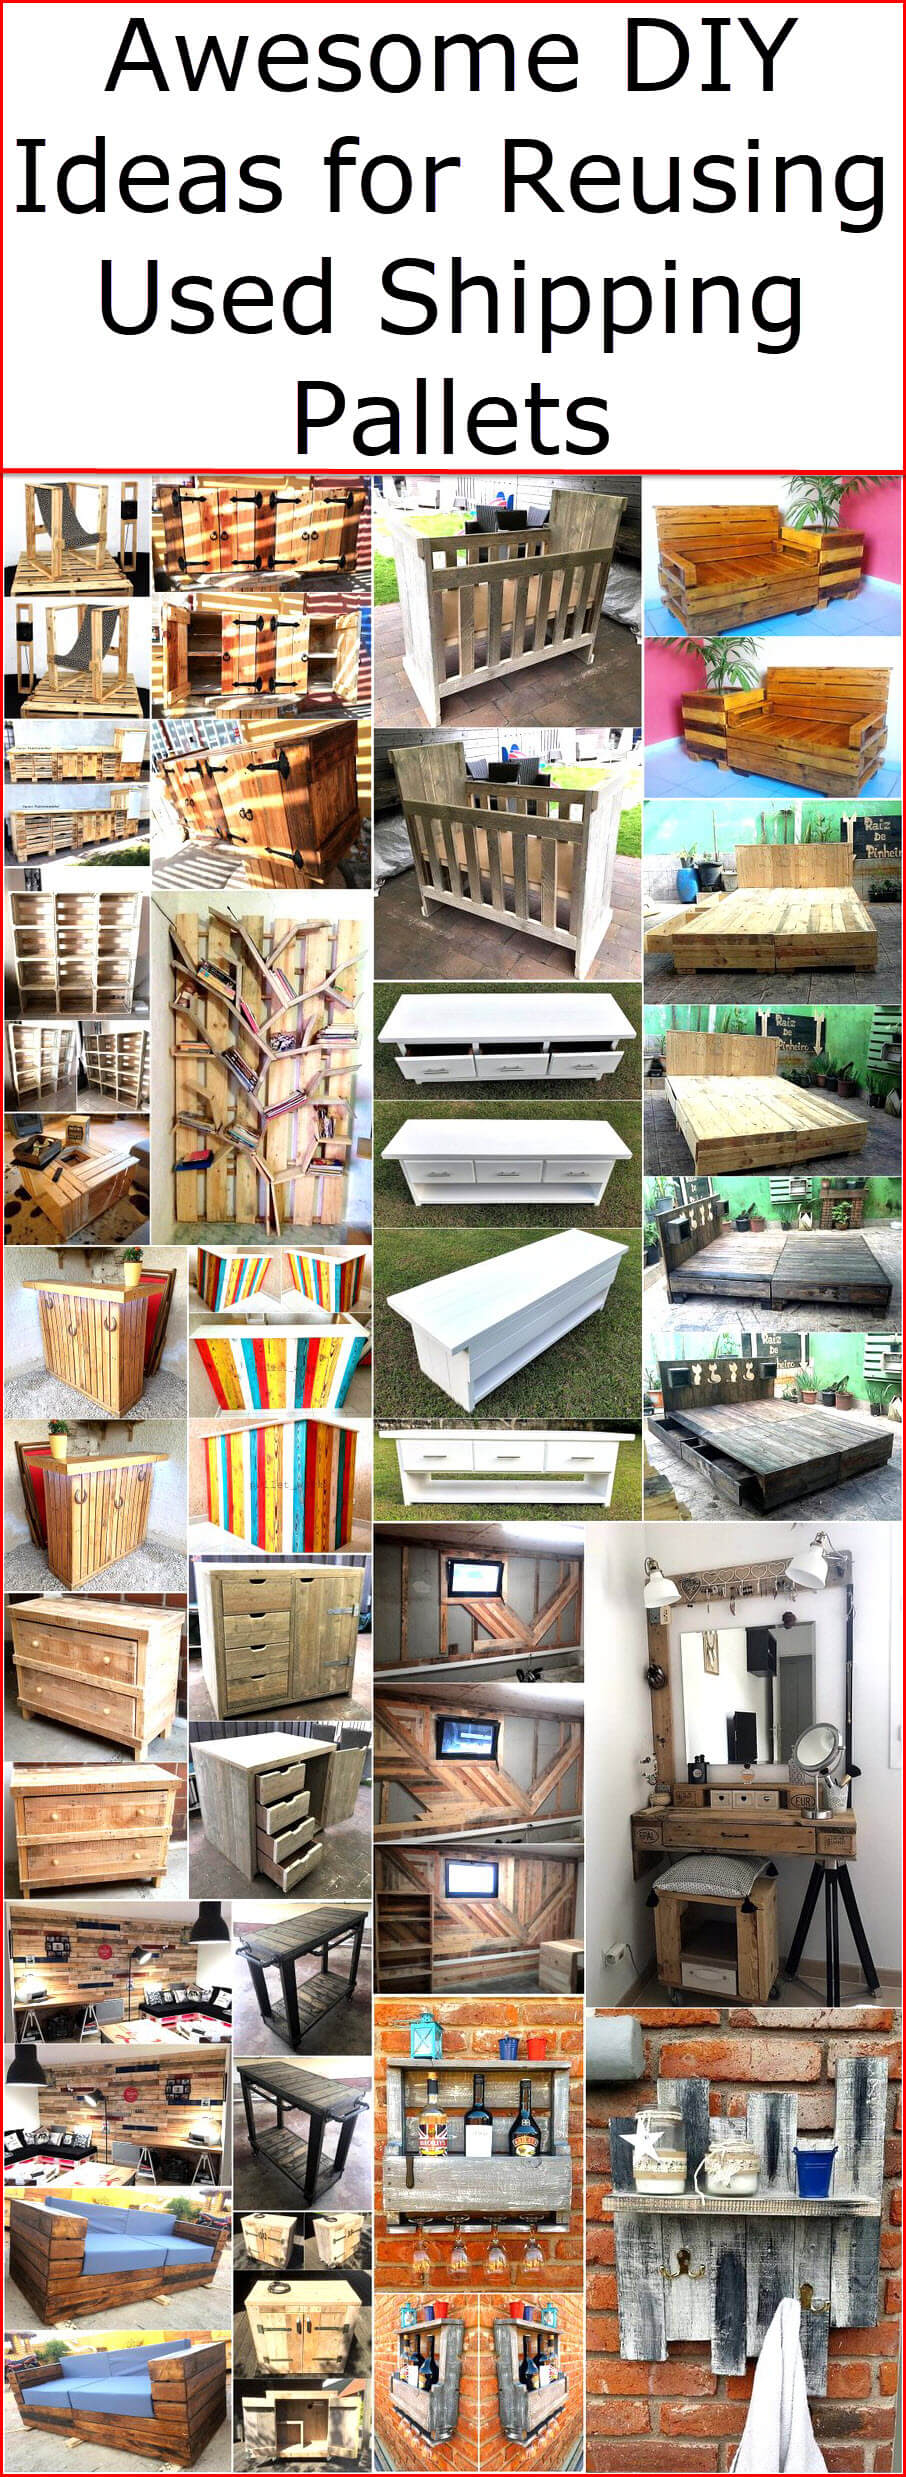 shipping pallet furniture ideas. Awesome DIY Ideas For Reusing Used Shipping Pallets | Wood Pallet Furniture R